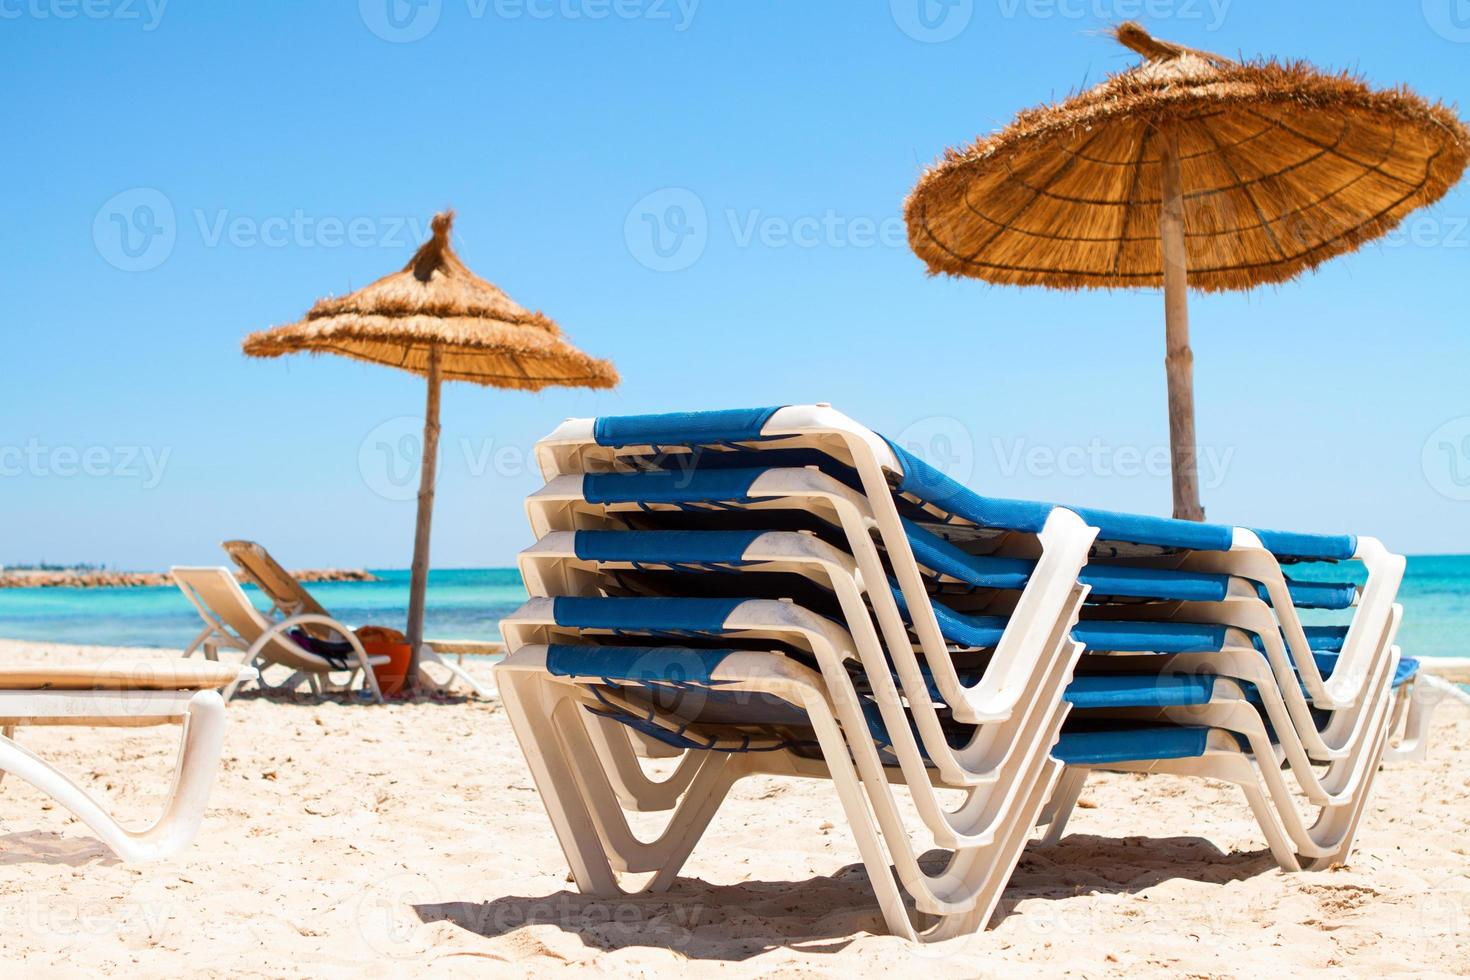 Deck chairs and parasol on the beach photo